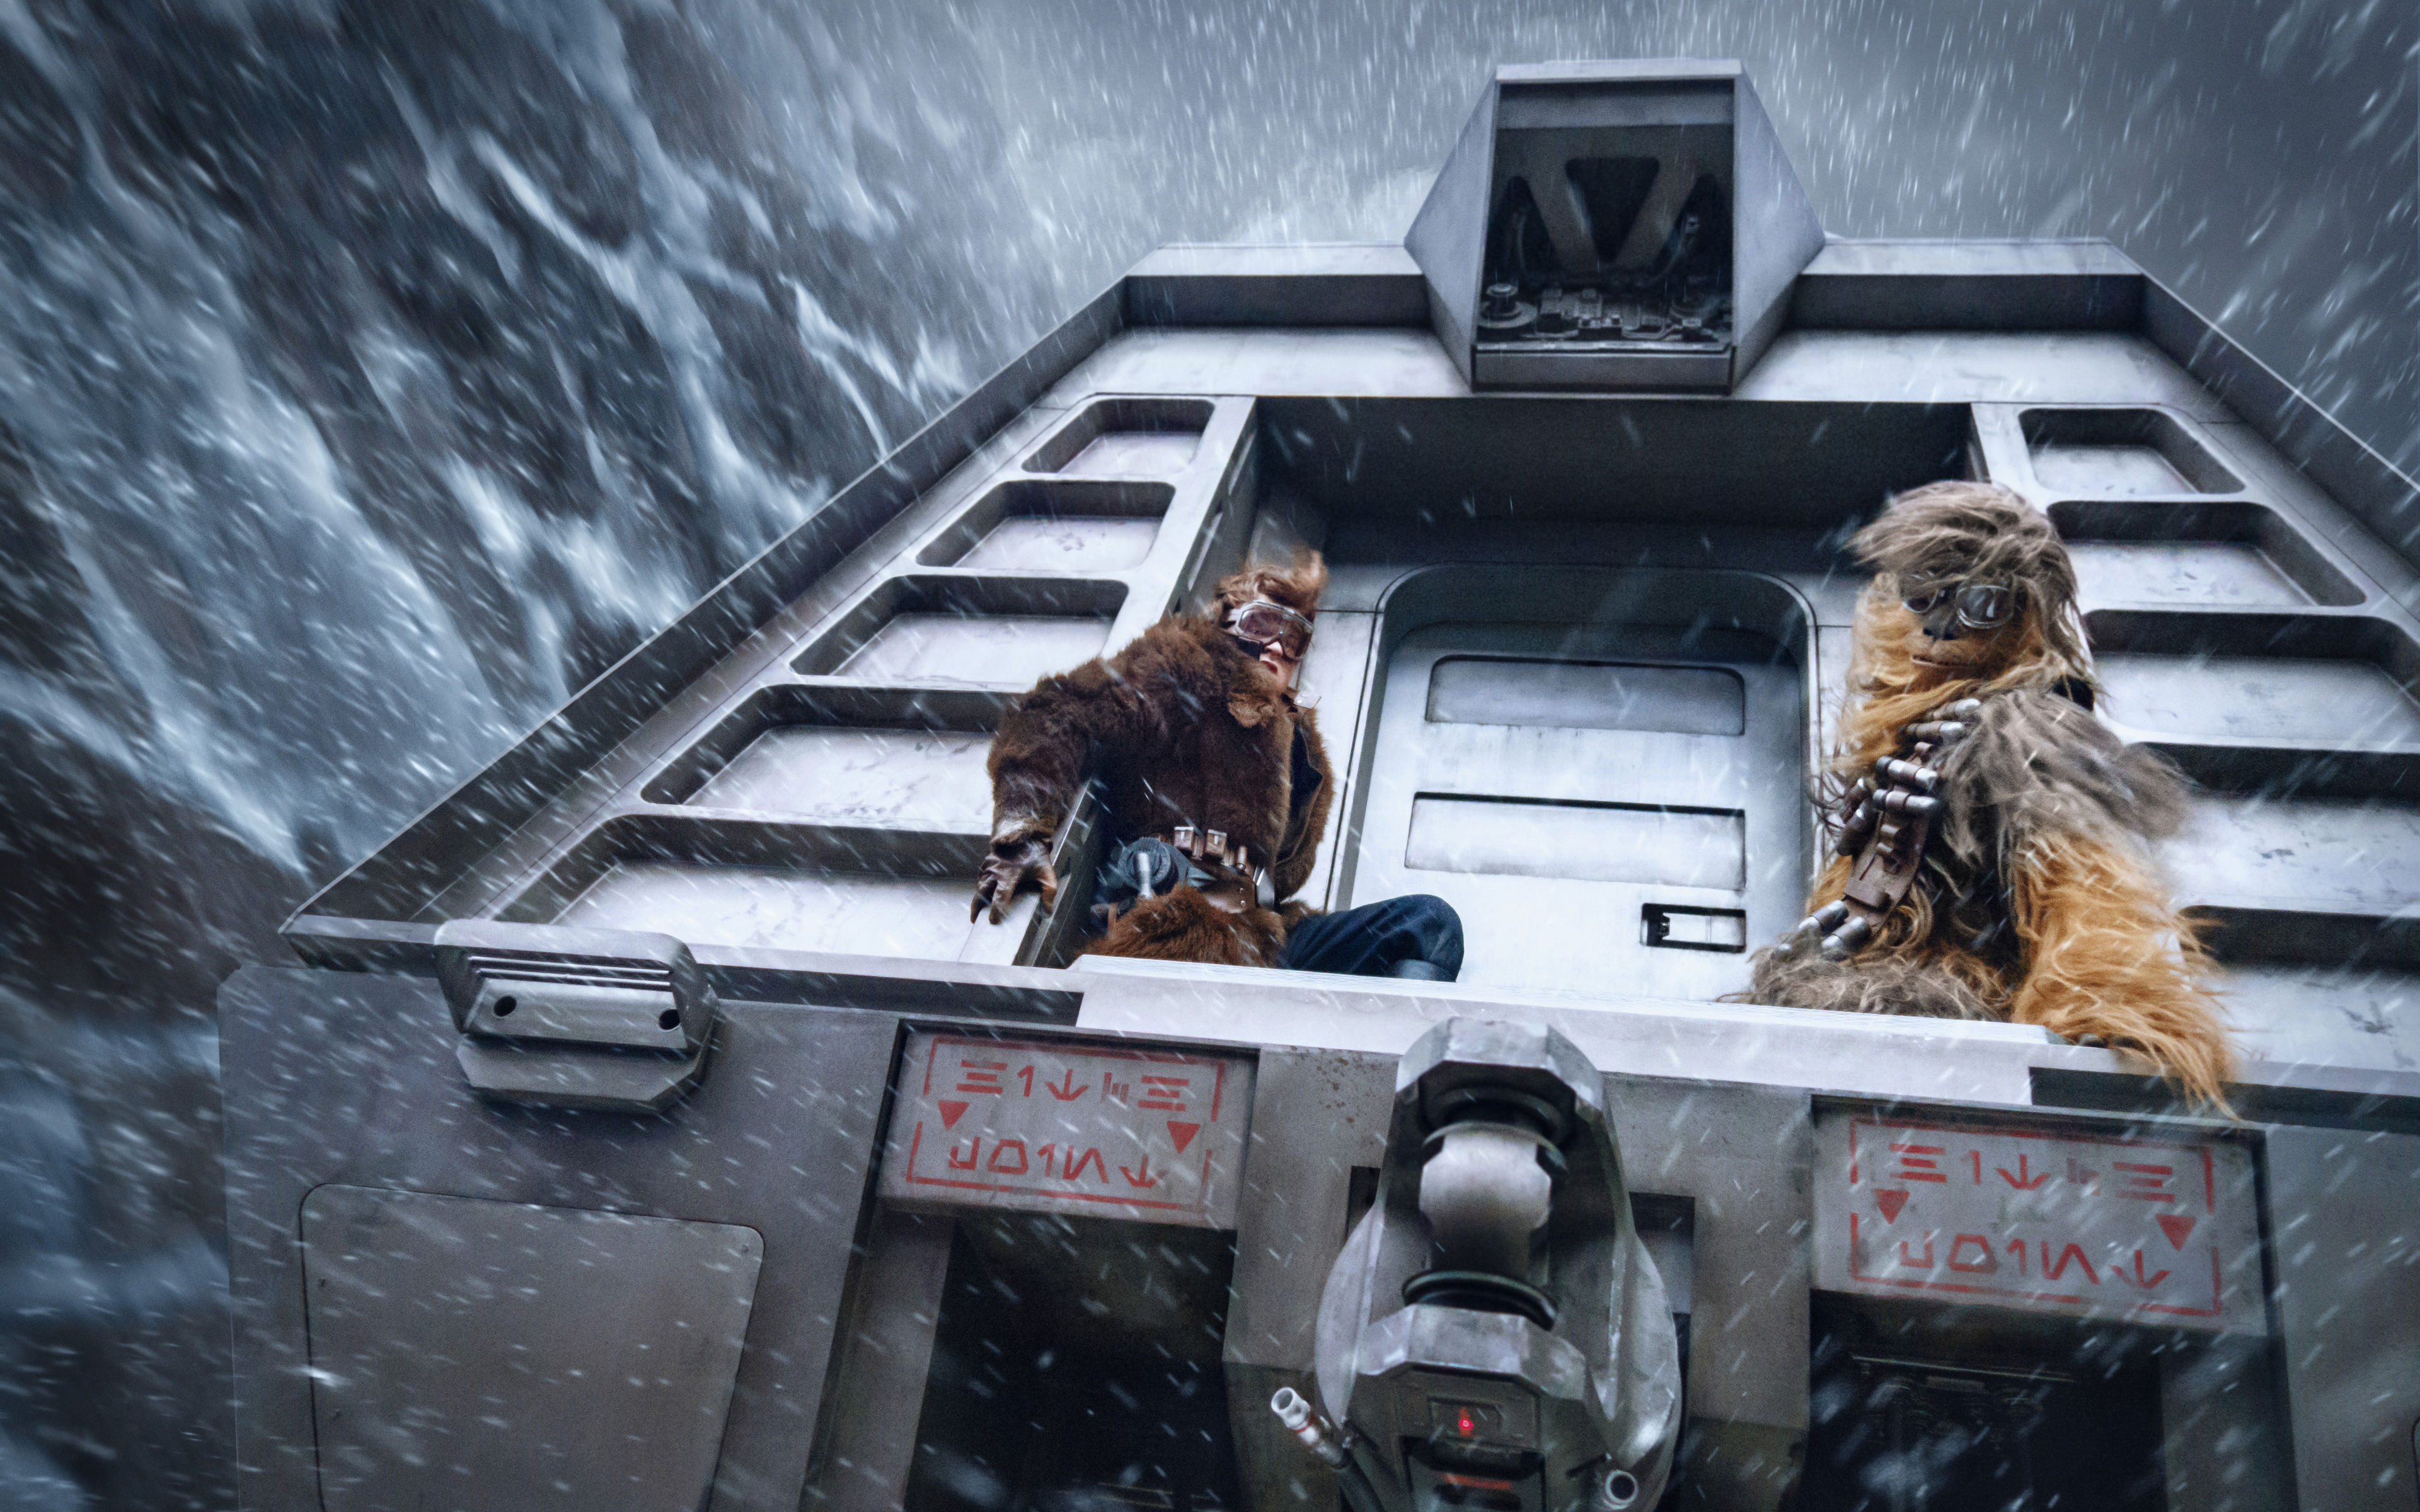 Download Wallpapers Solo A Star Wars Story 4k 2018 Movie Star Wars For Desktop With Resolution 3840x2400 High Quality Hd Pictures Wallpapers